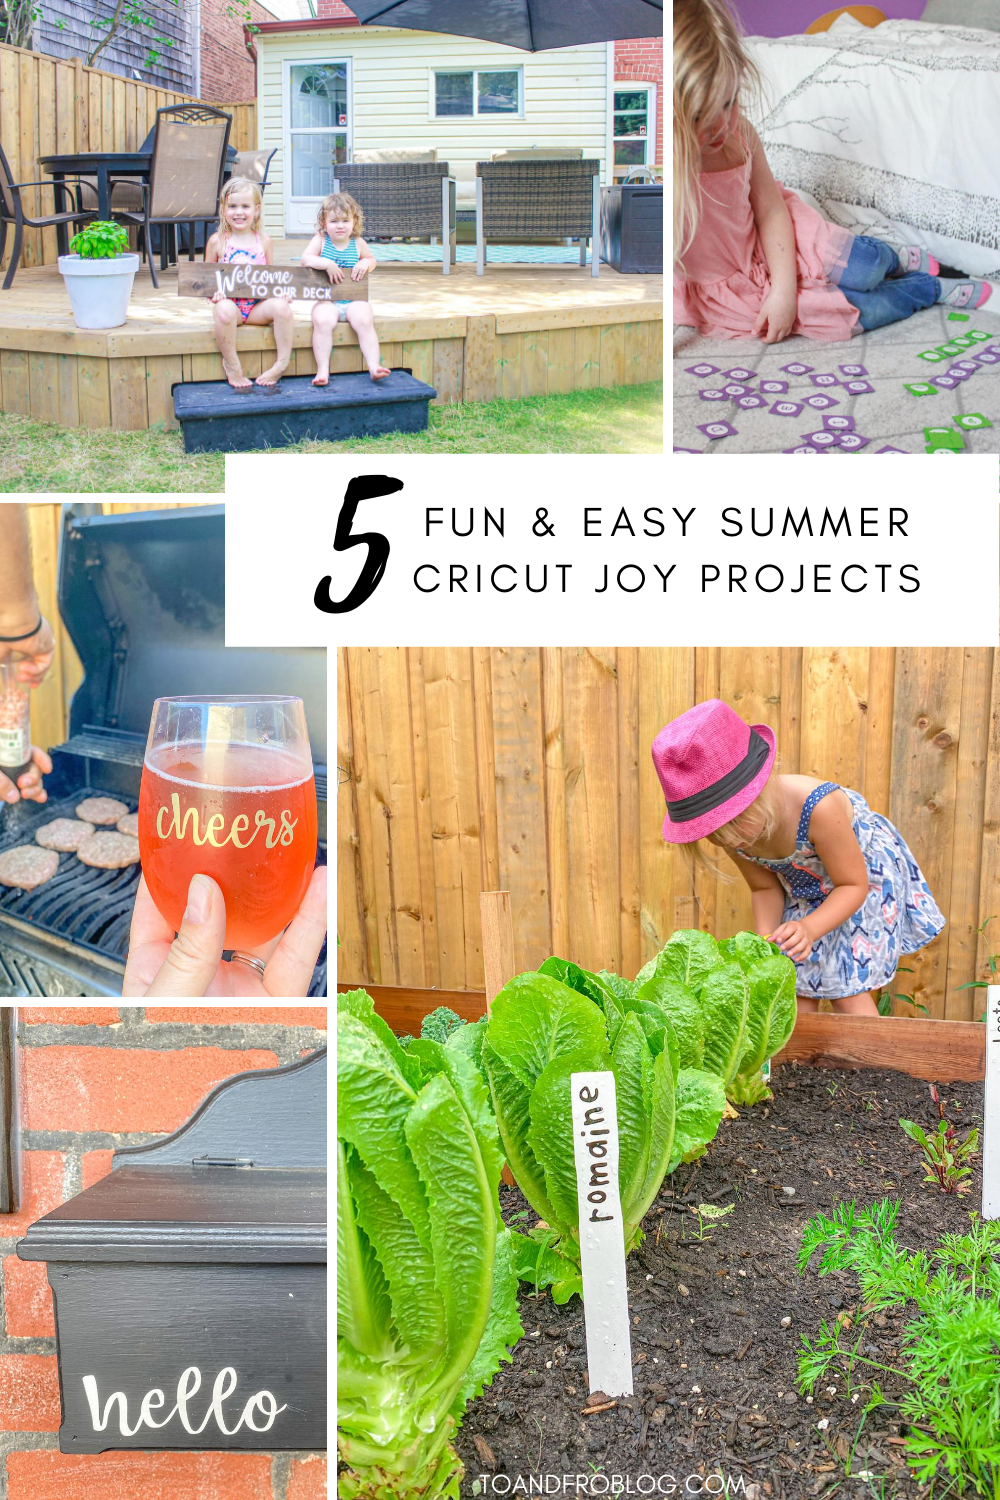 5 Fun & Easy Summer Cricut Joy Projects